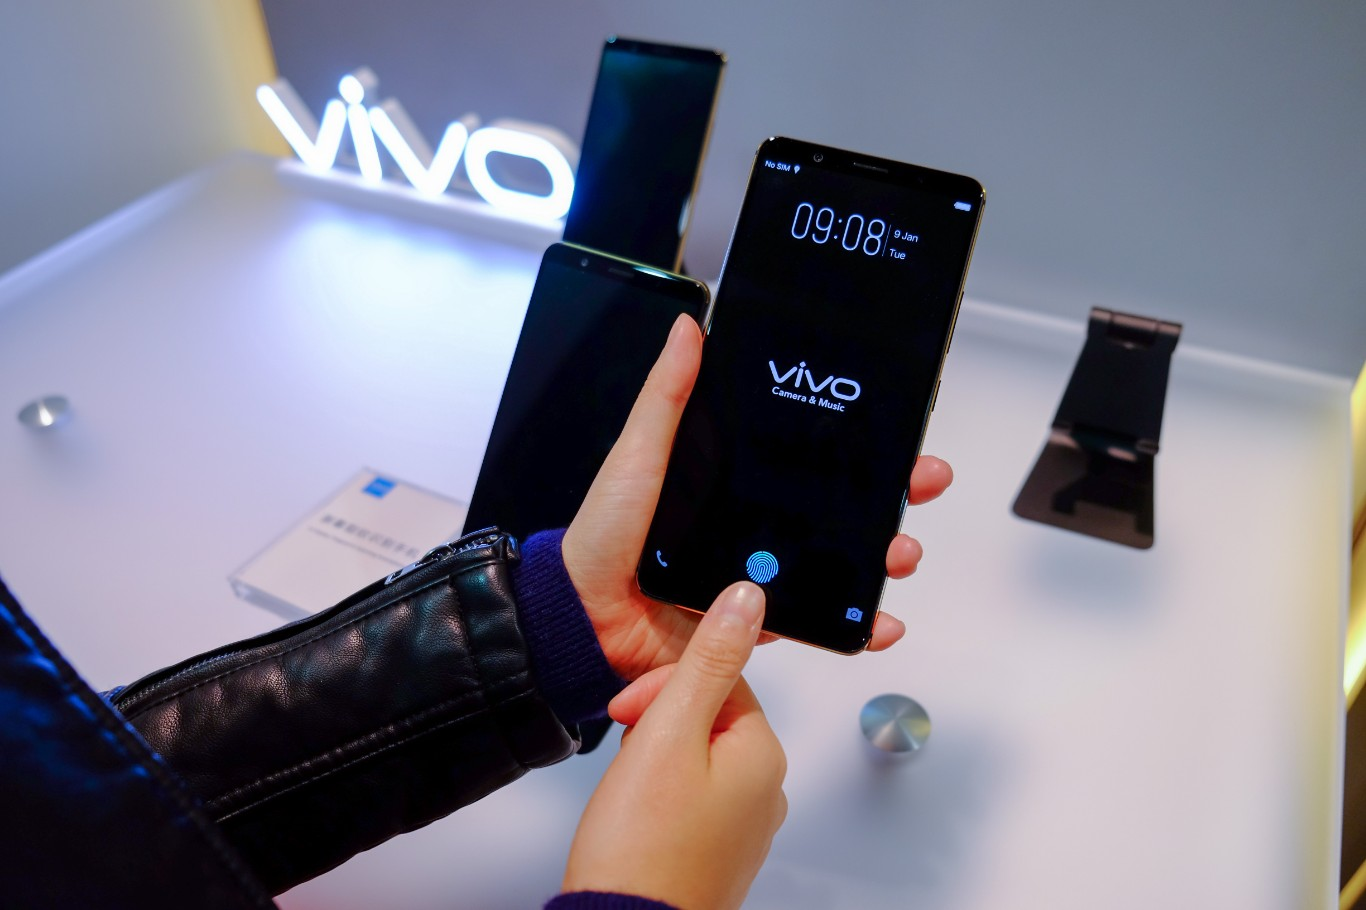 Vivo Showed Its First Phone With In Display Fingerprint Scanning Technology